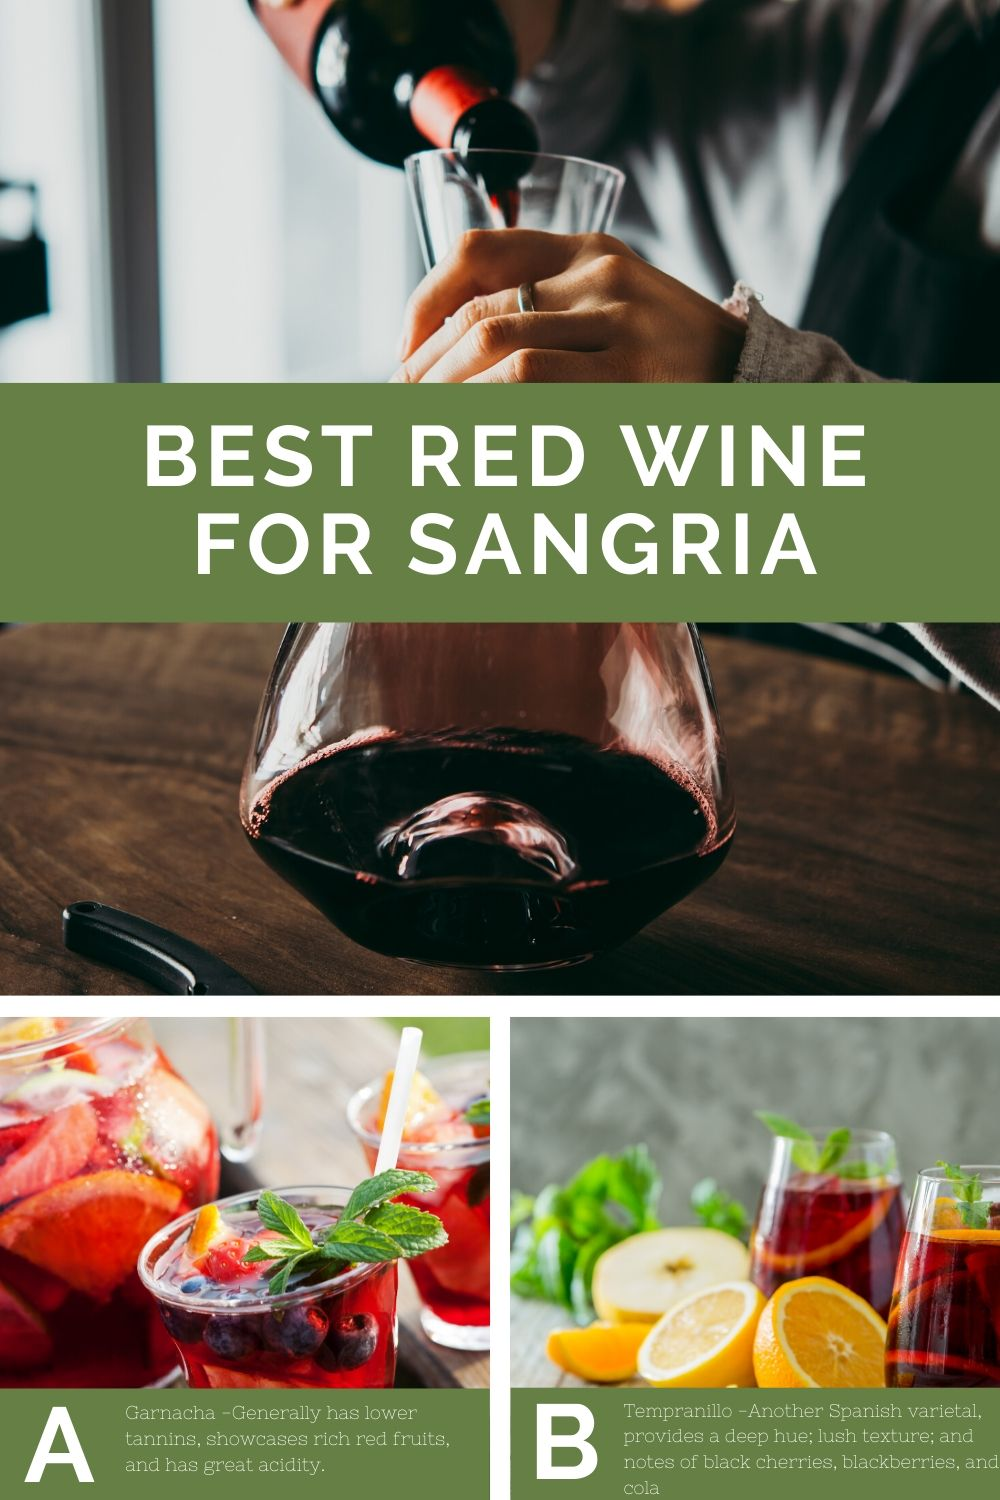 Best Red wine for Sangria